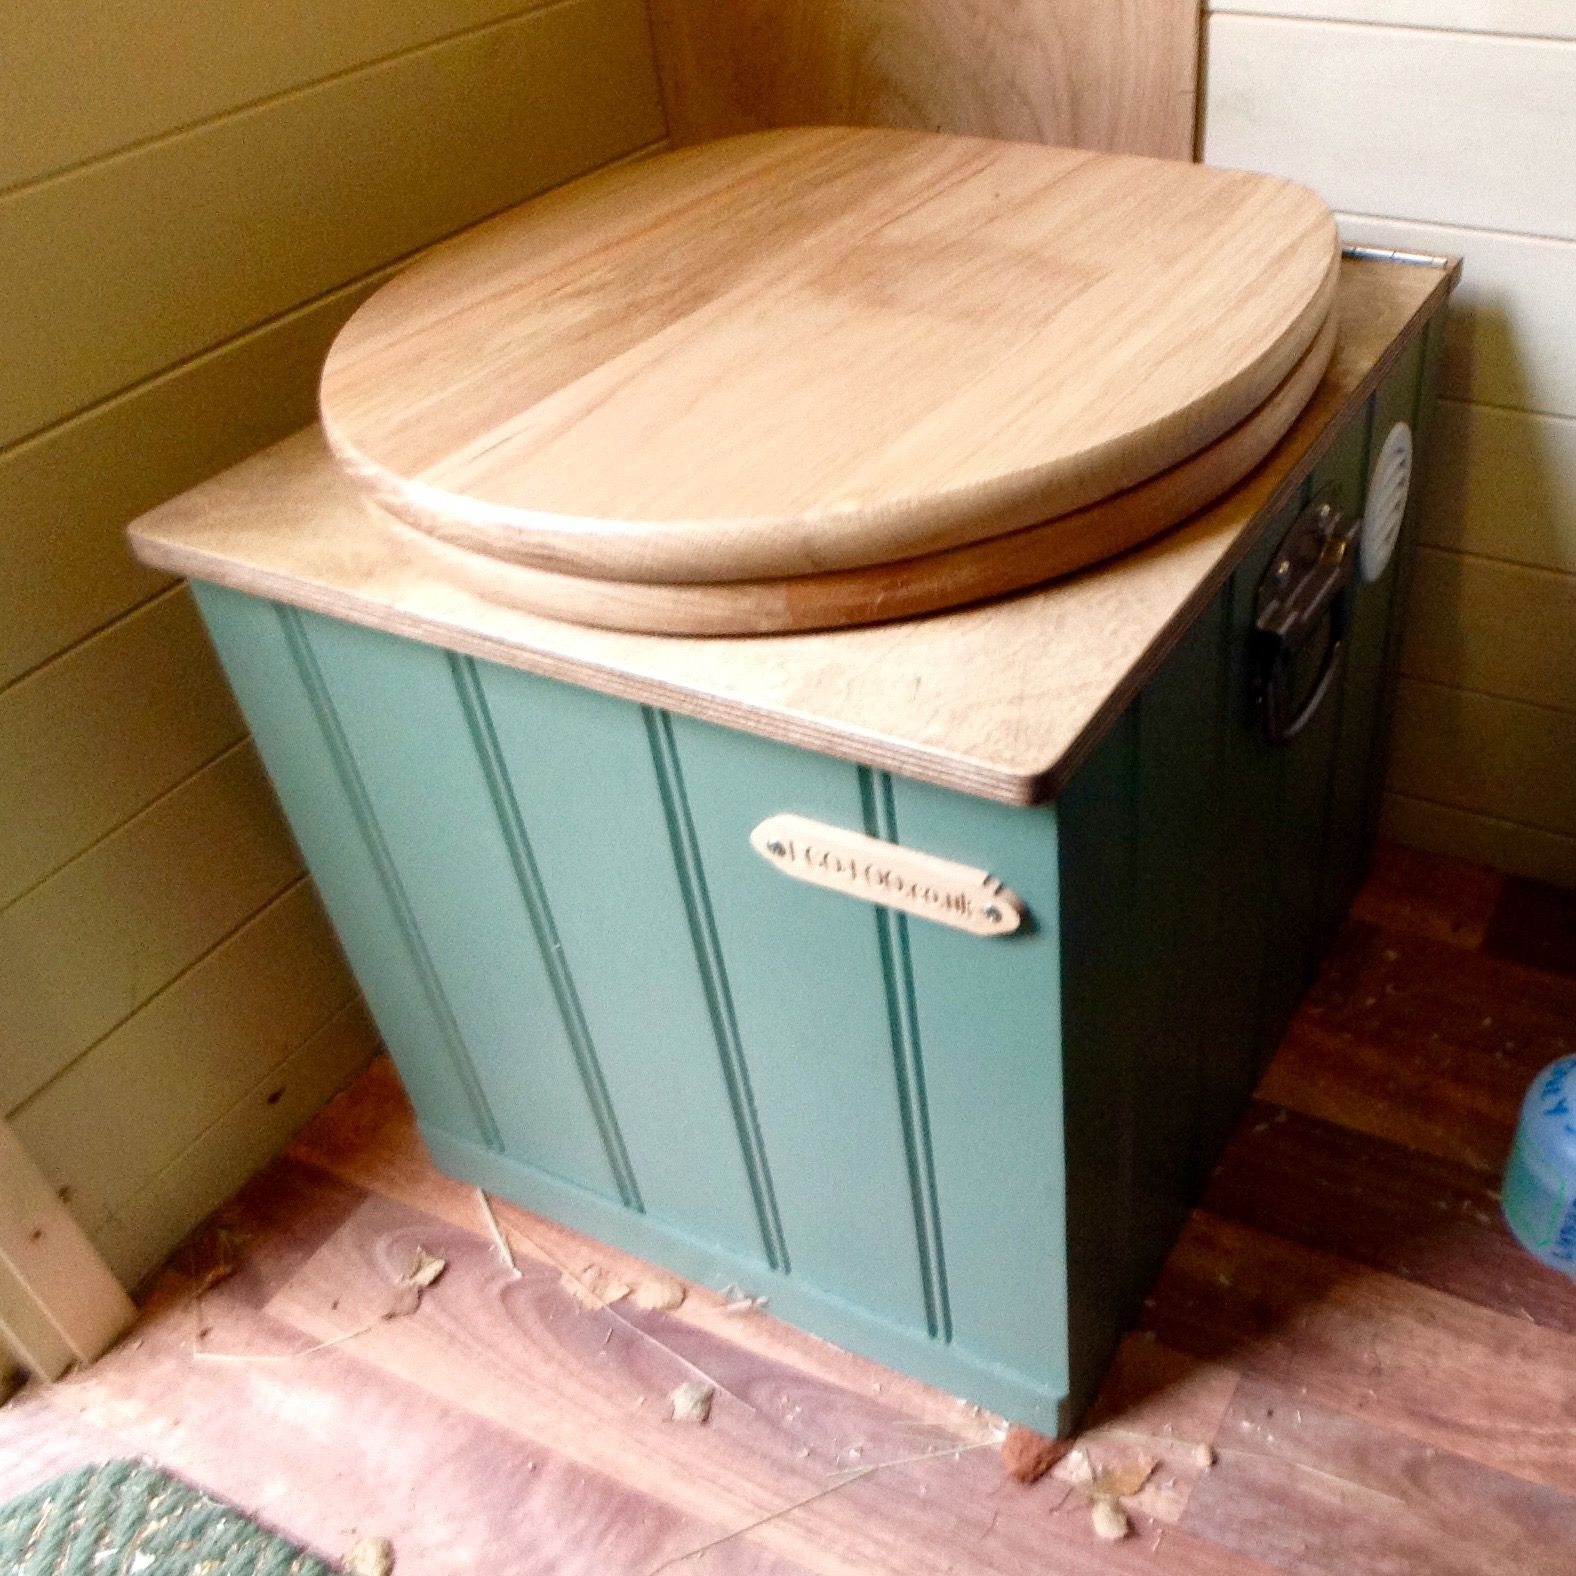 Eco-Loo Capture 5/13 compost toilet in use in my shed. Designed for ...